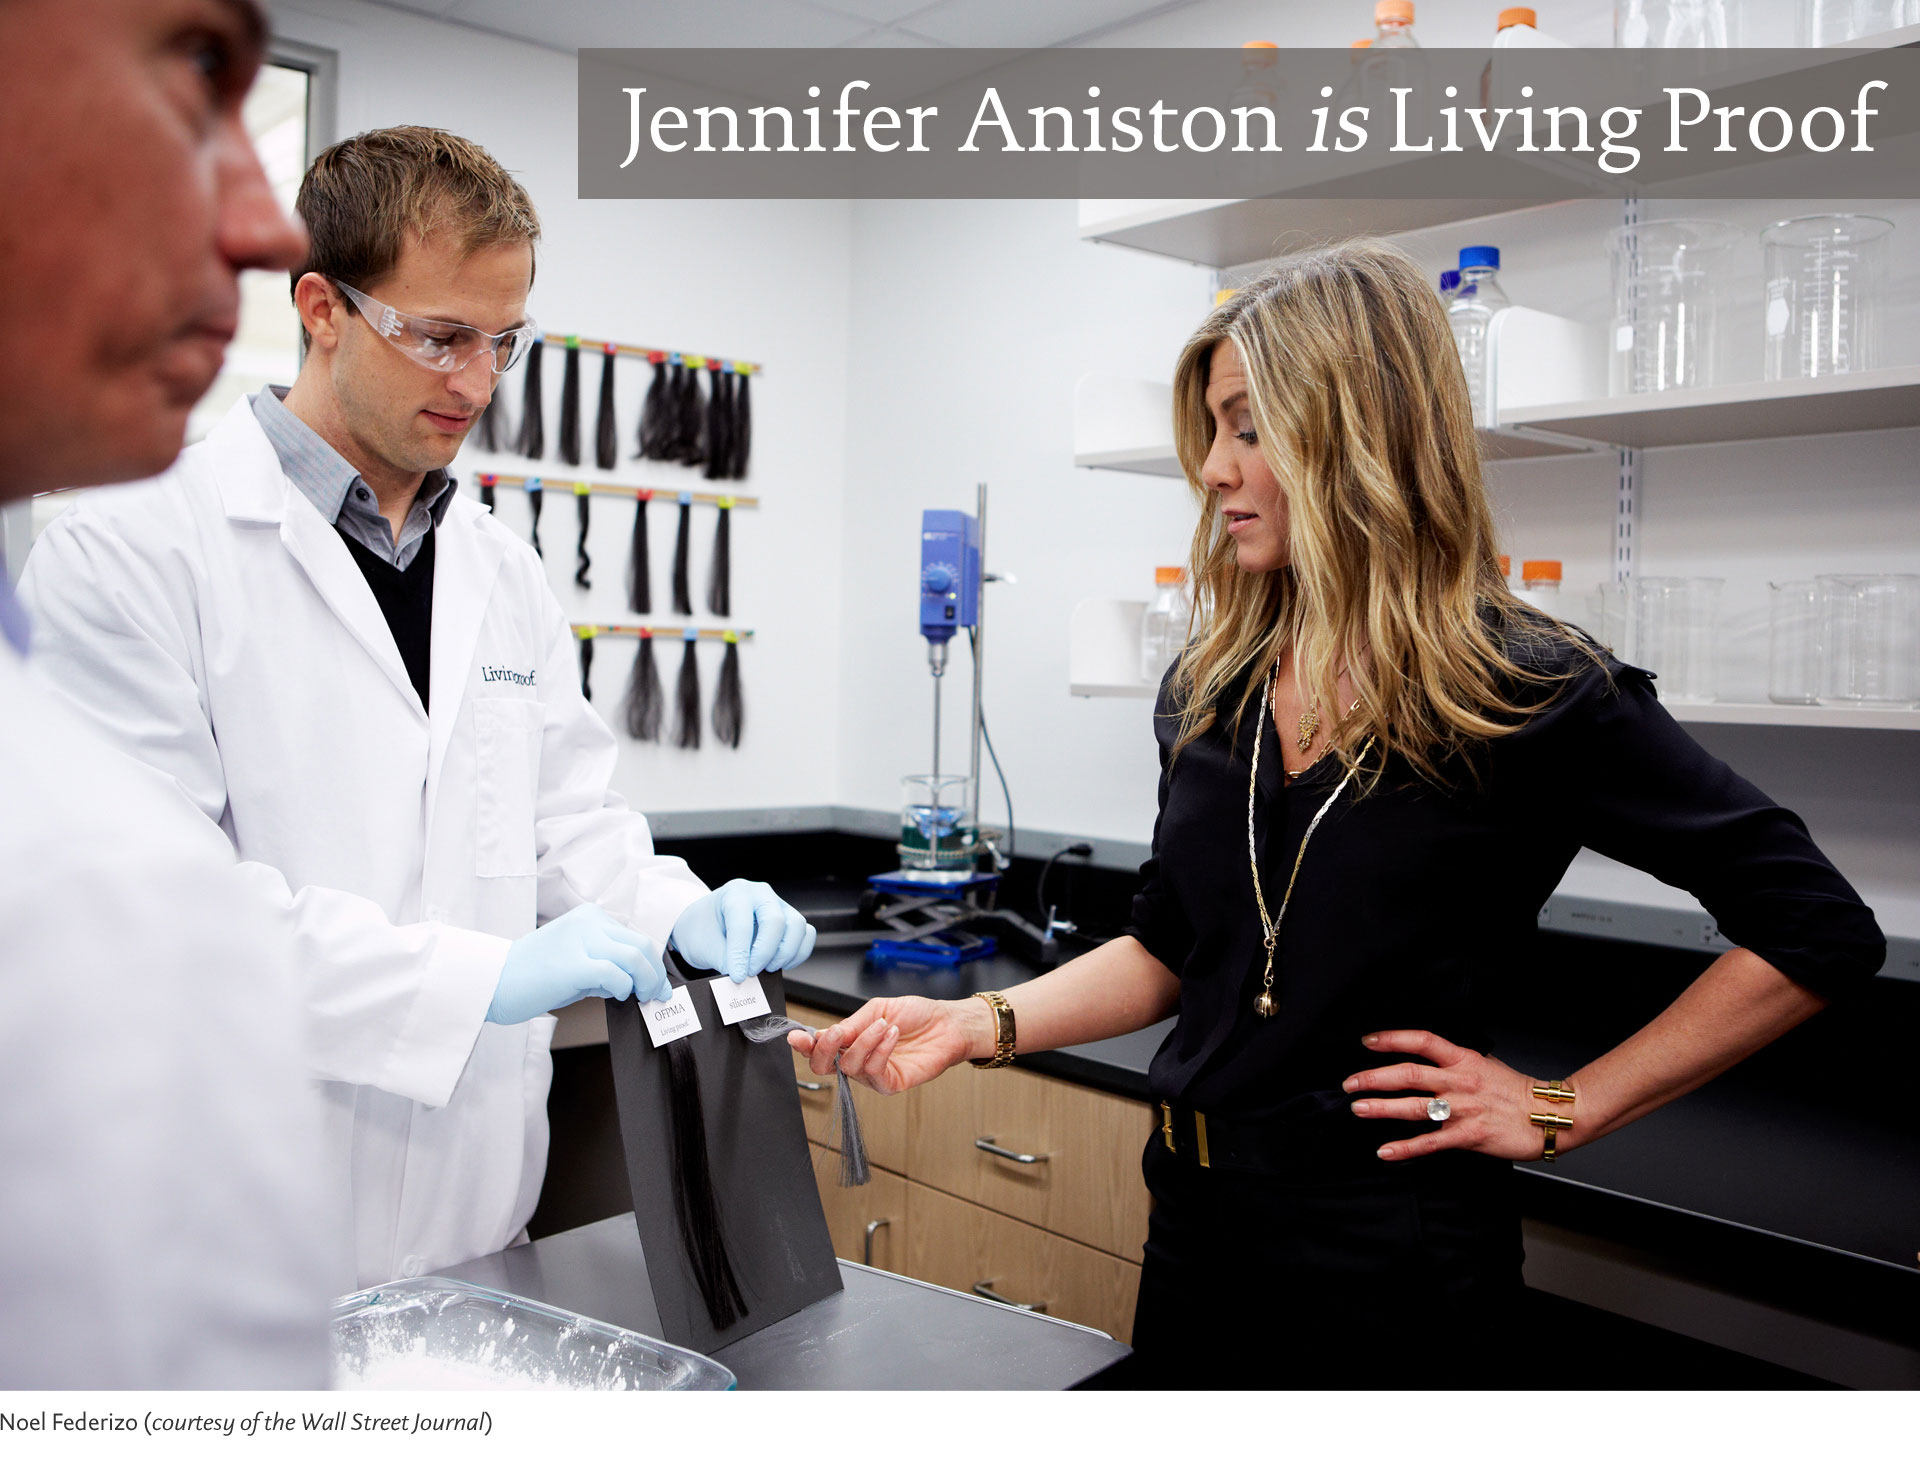 Jennifer Aniston is Living Proof